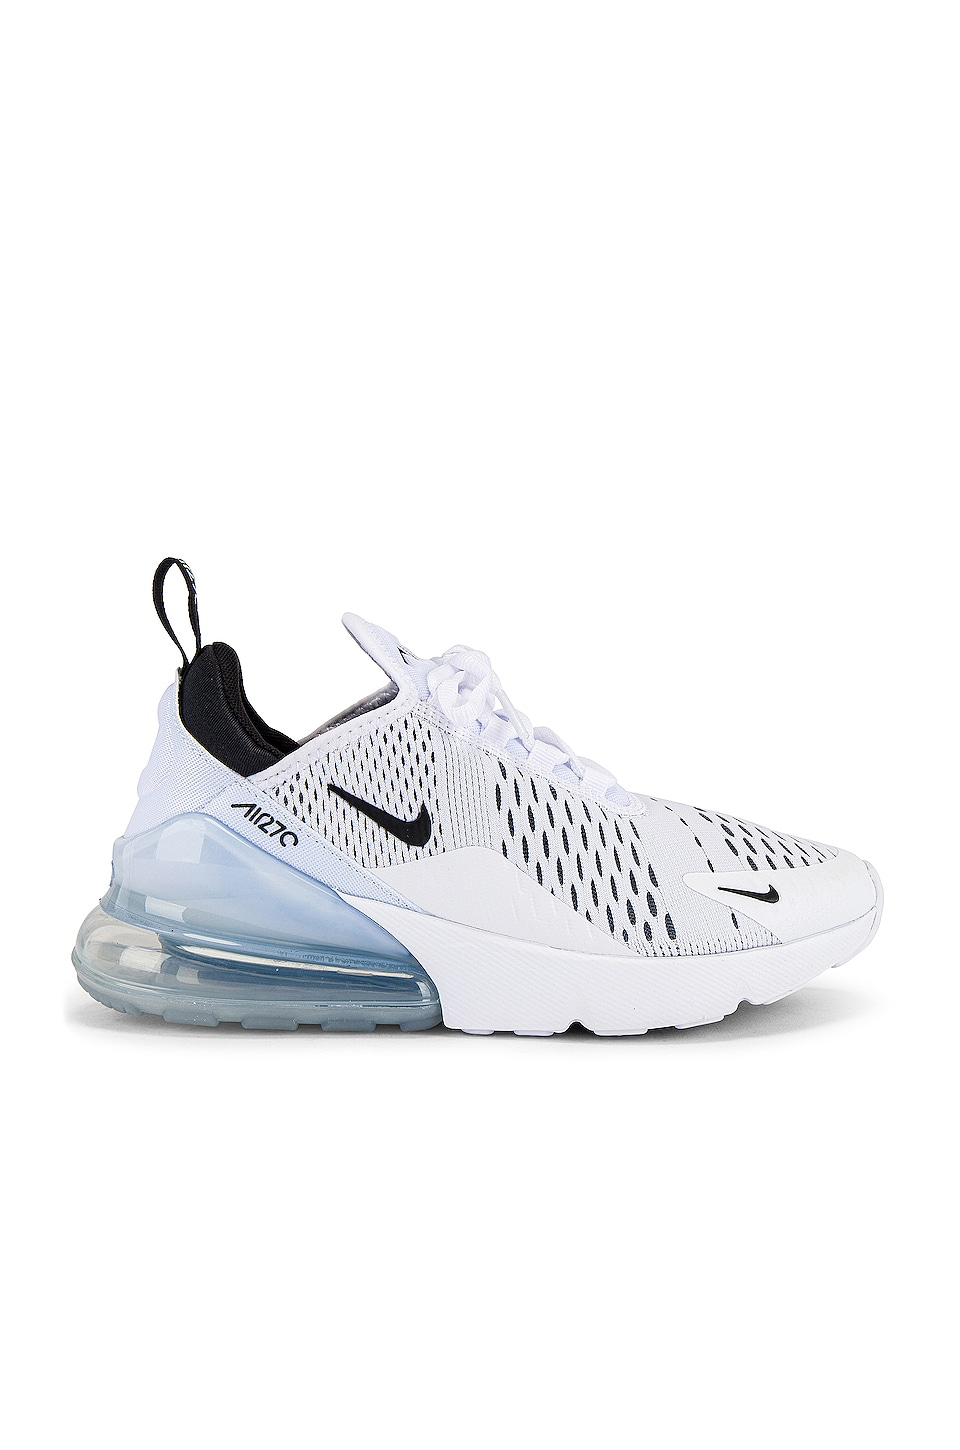 Nike Air Max 270 Sneaker in White & Black